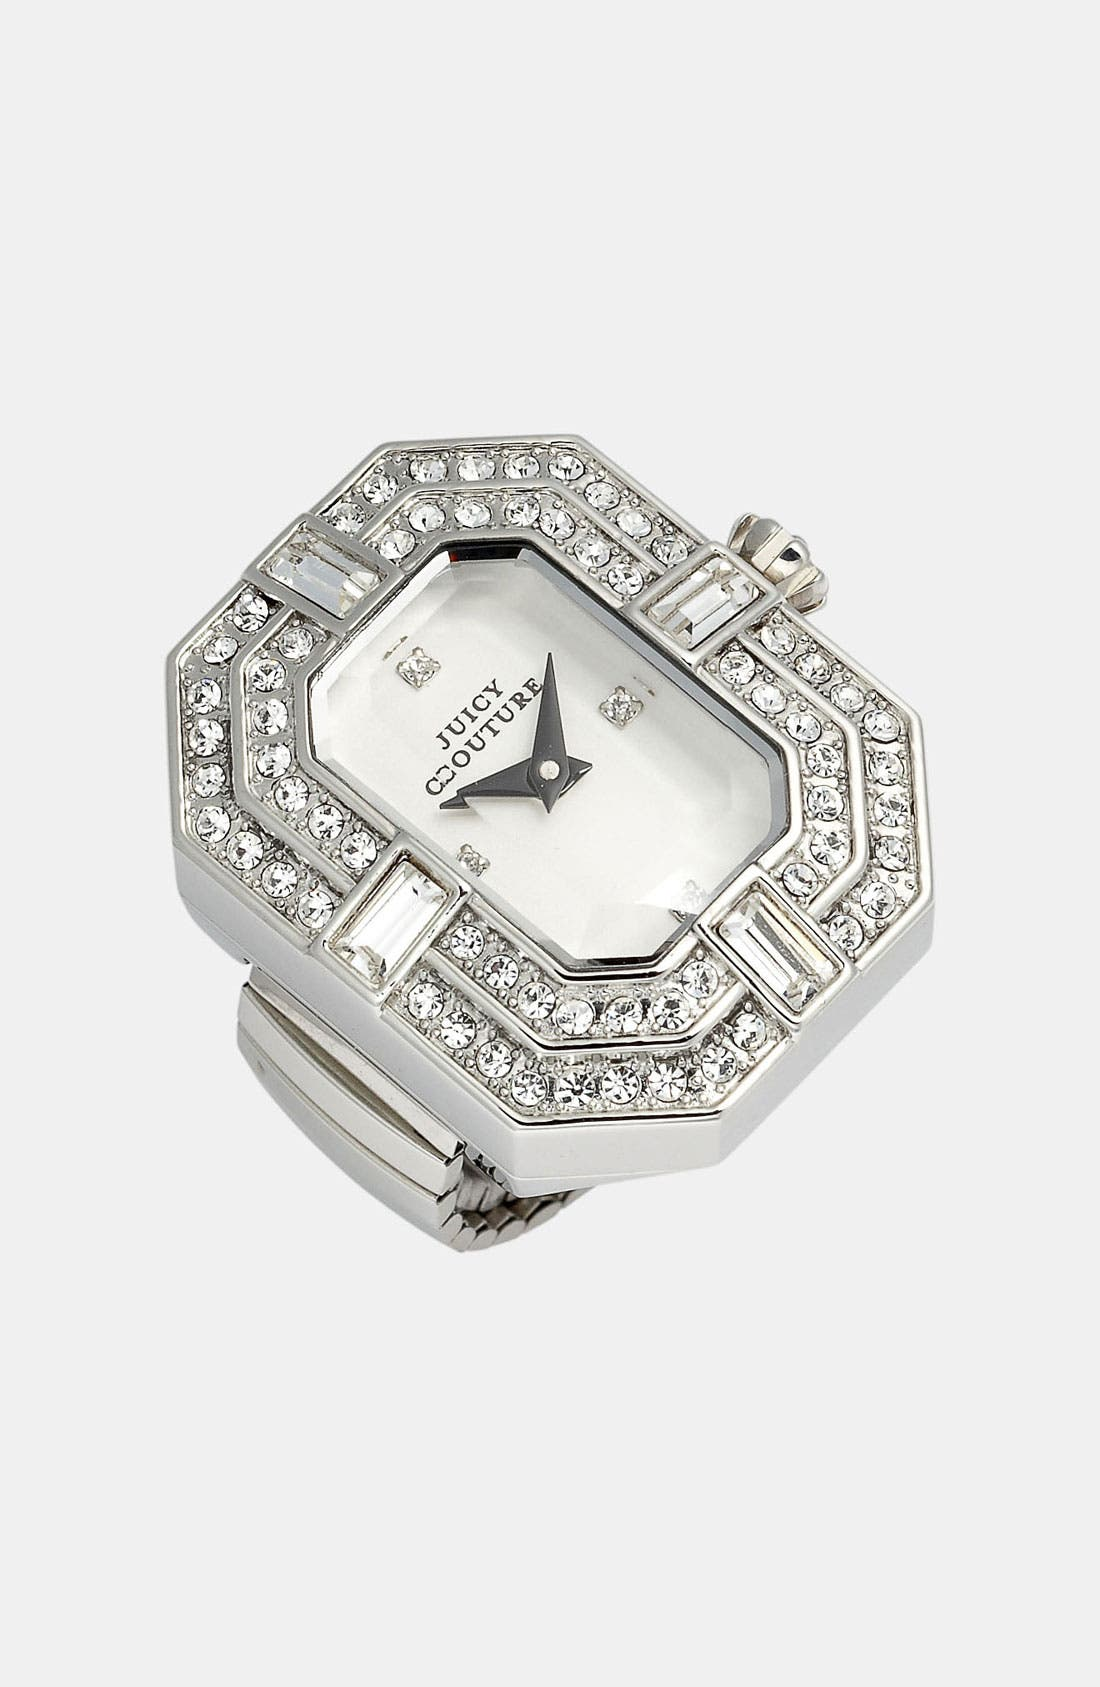 Alternate Image 1 Selected - Juicy Couture 'Marianne' Watch Dial Cocktail Ring, 26mm x 21mm